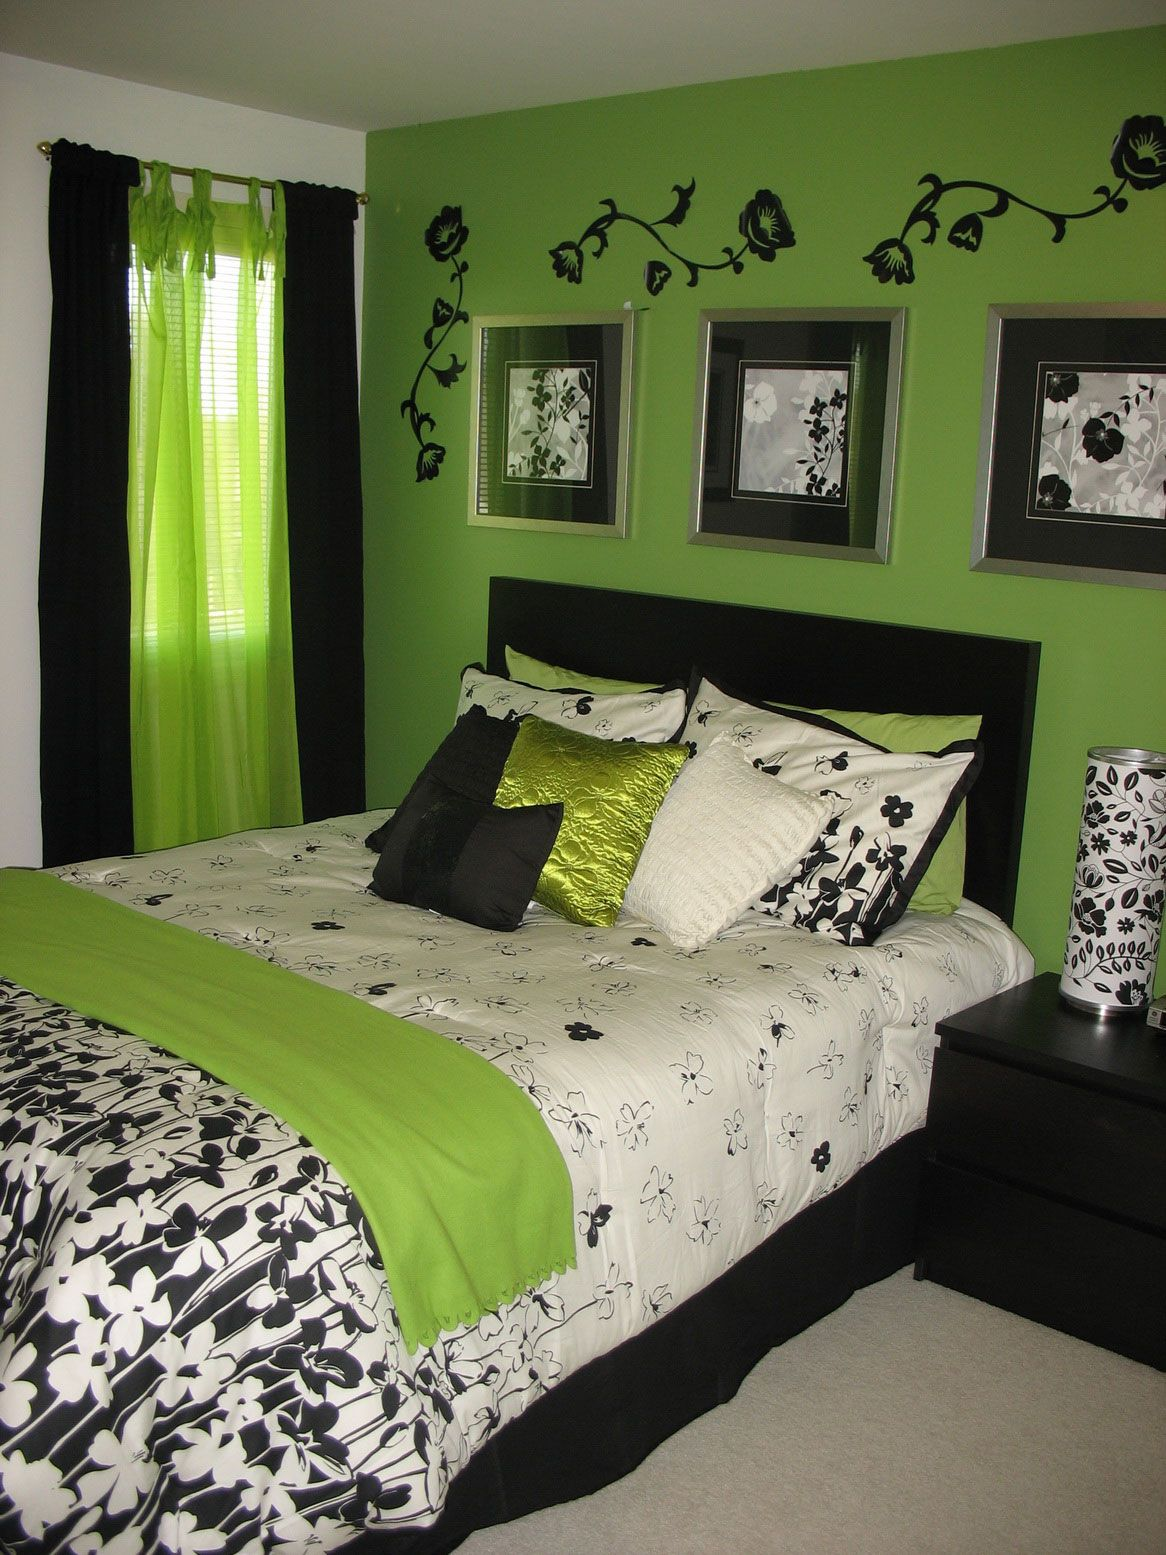 Black and white bedrooms with color accents - I Like This Room But Id Rather A Dark Green Color Instead Of This Lime Color